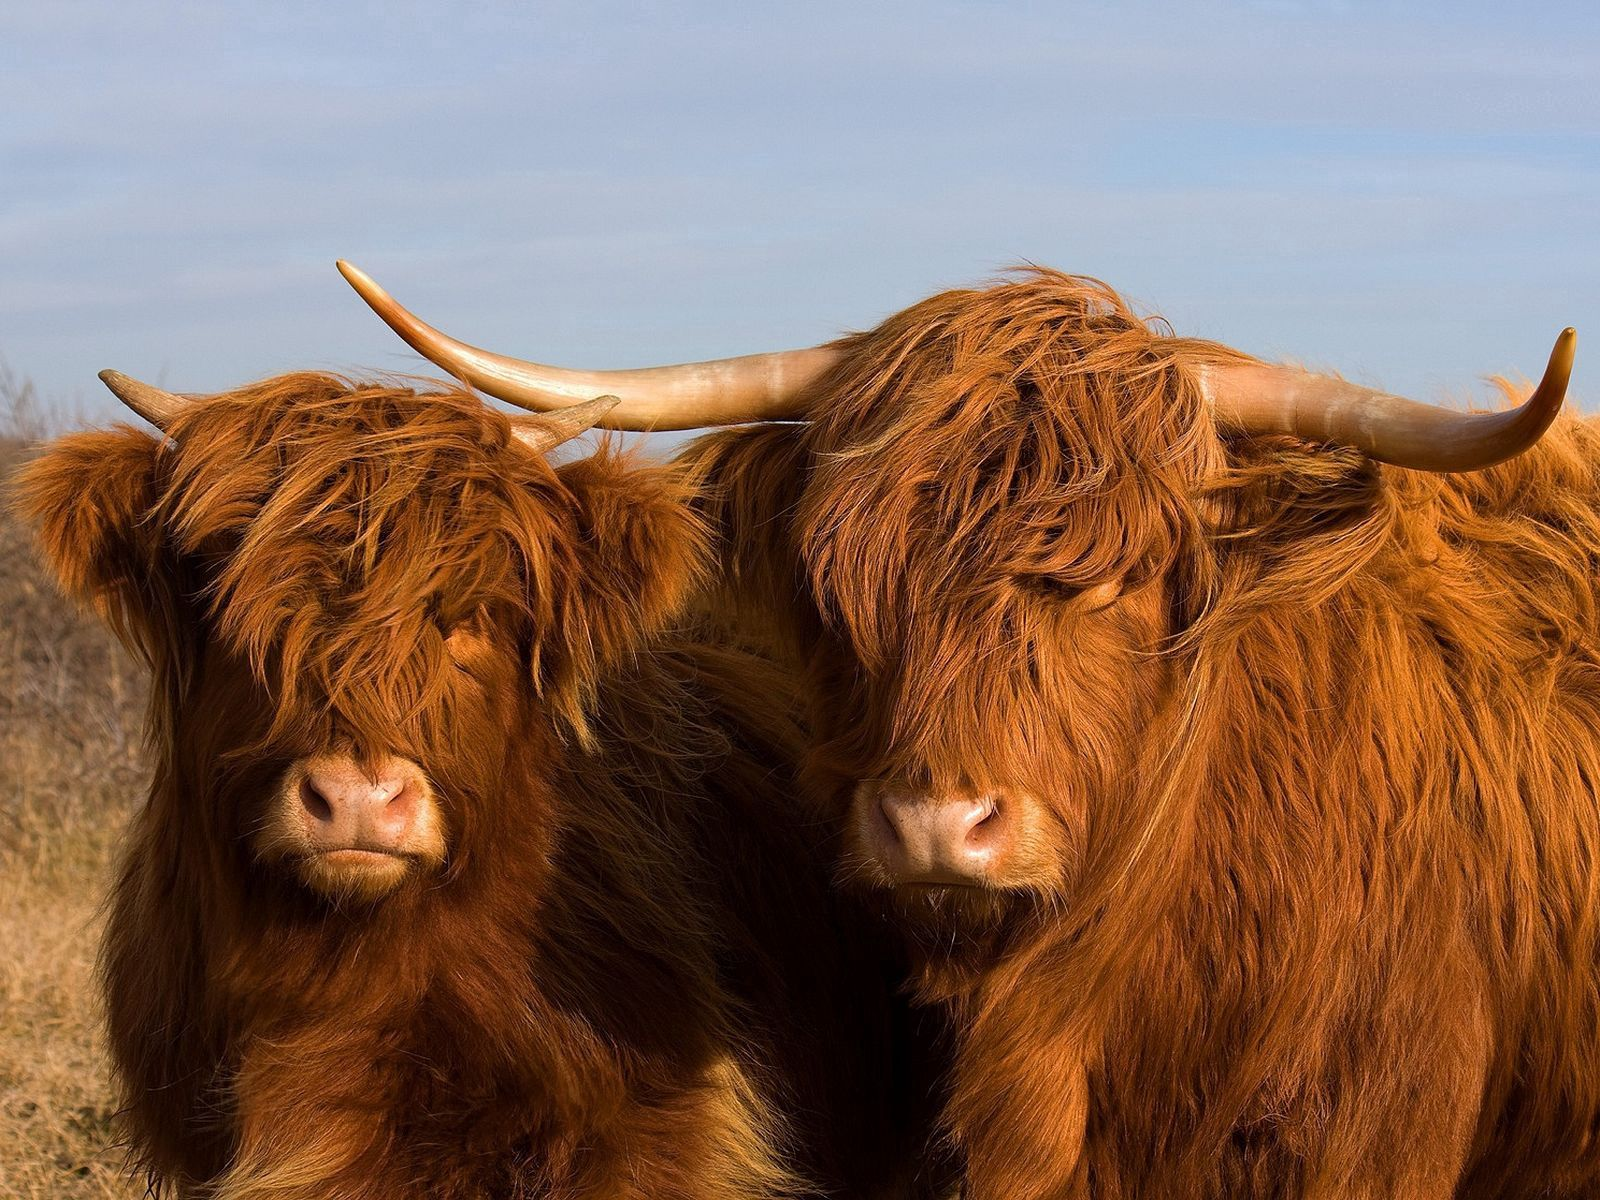 94566 download wallpaper Animals, Bulls, Couple, Pair, Horns, Wool screensavers and pictures for free